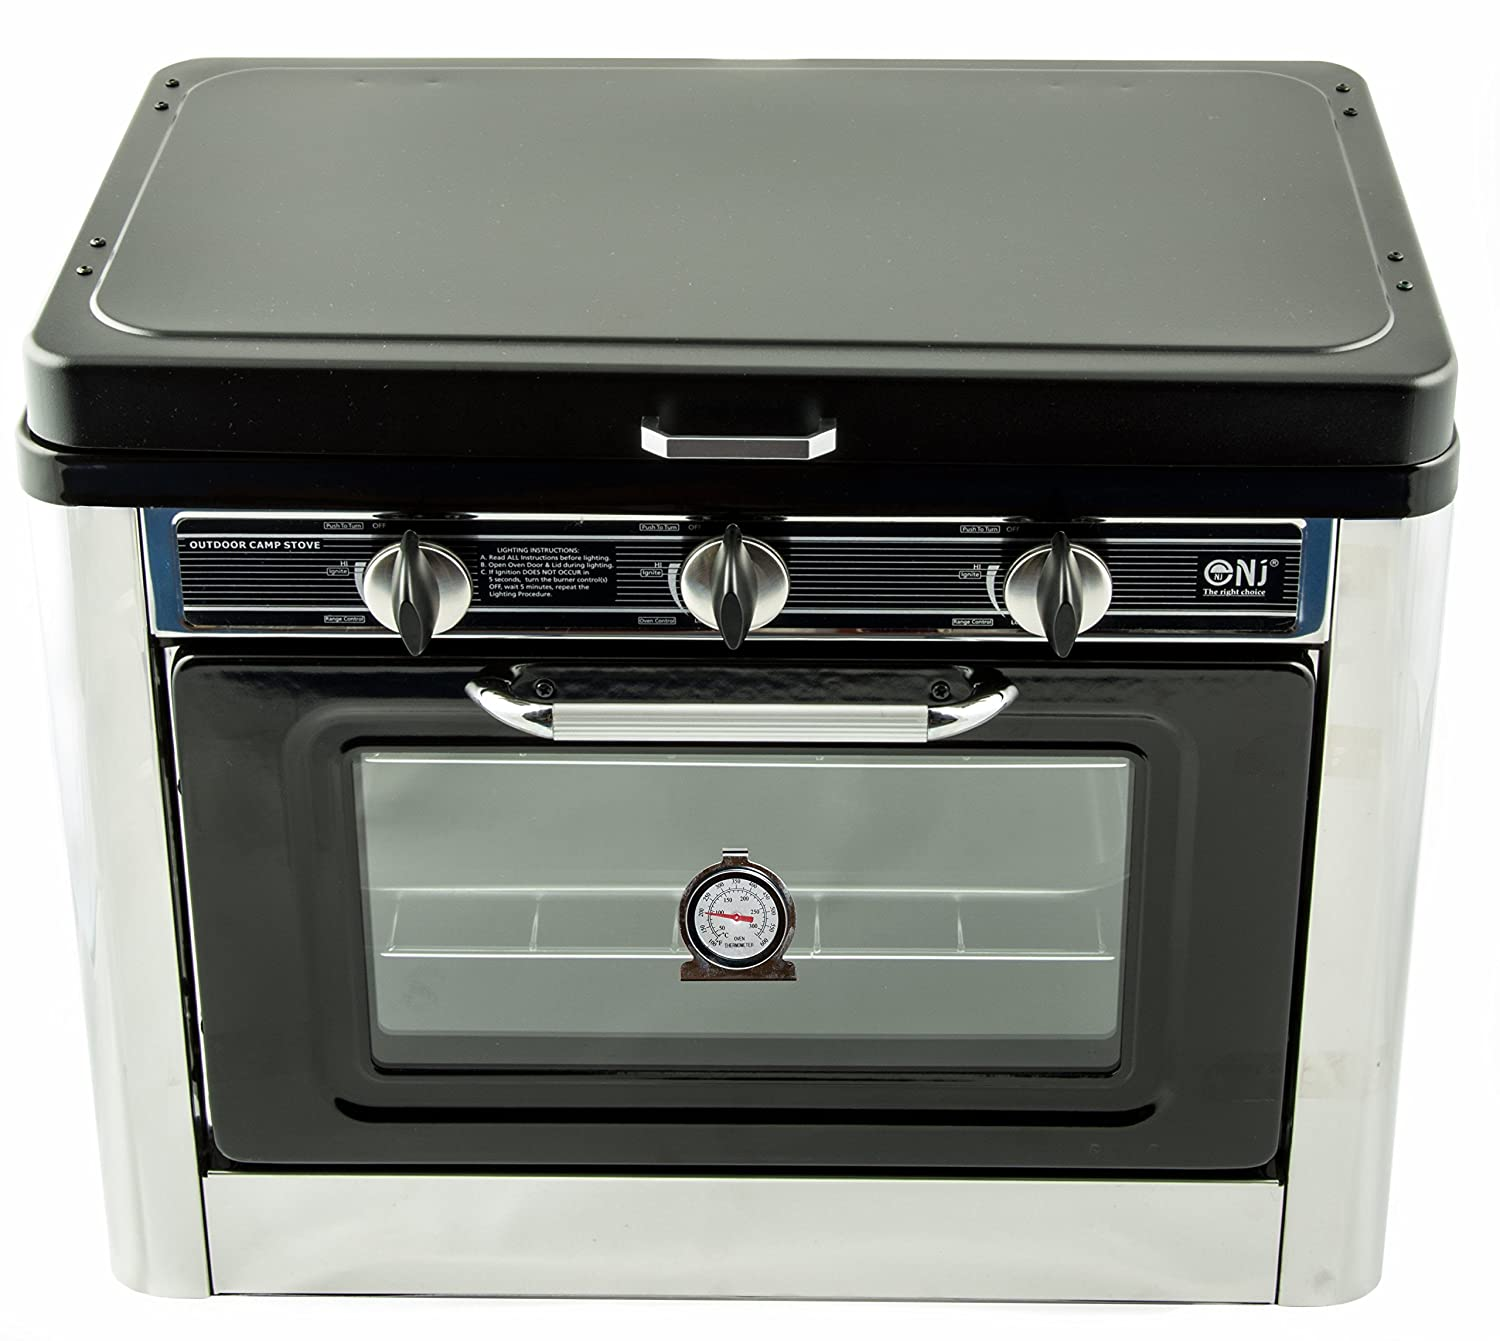 Oven Gas Stove Camping Gas Oven Hob 2 Burners Stainless Steel With Carry Case